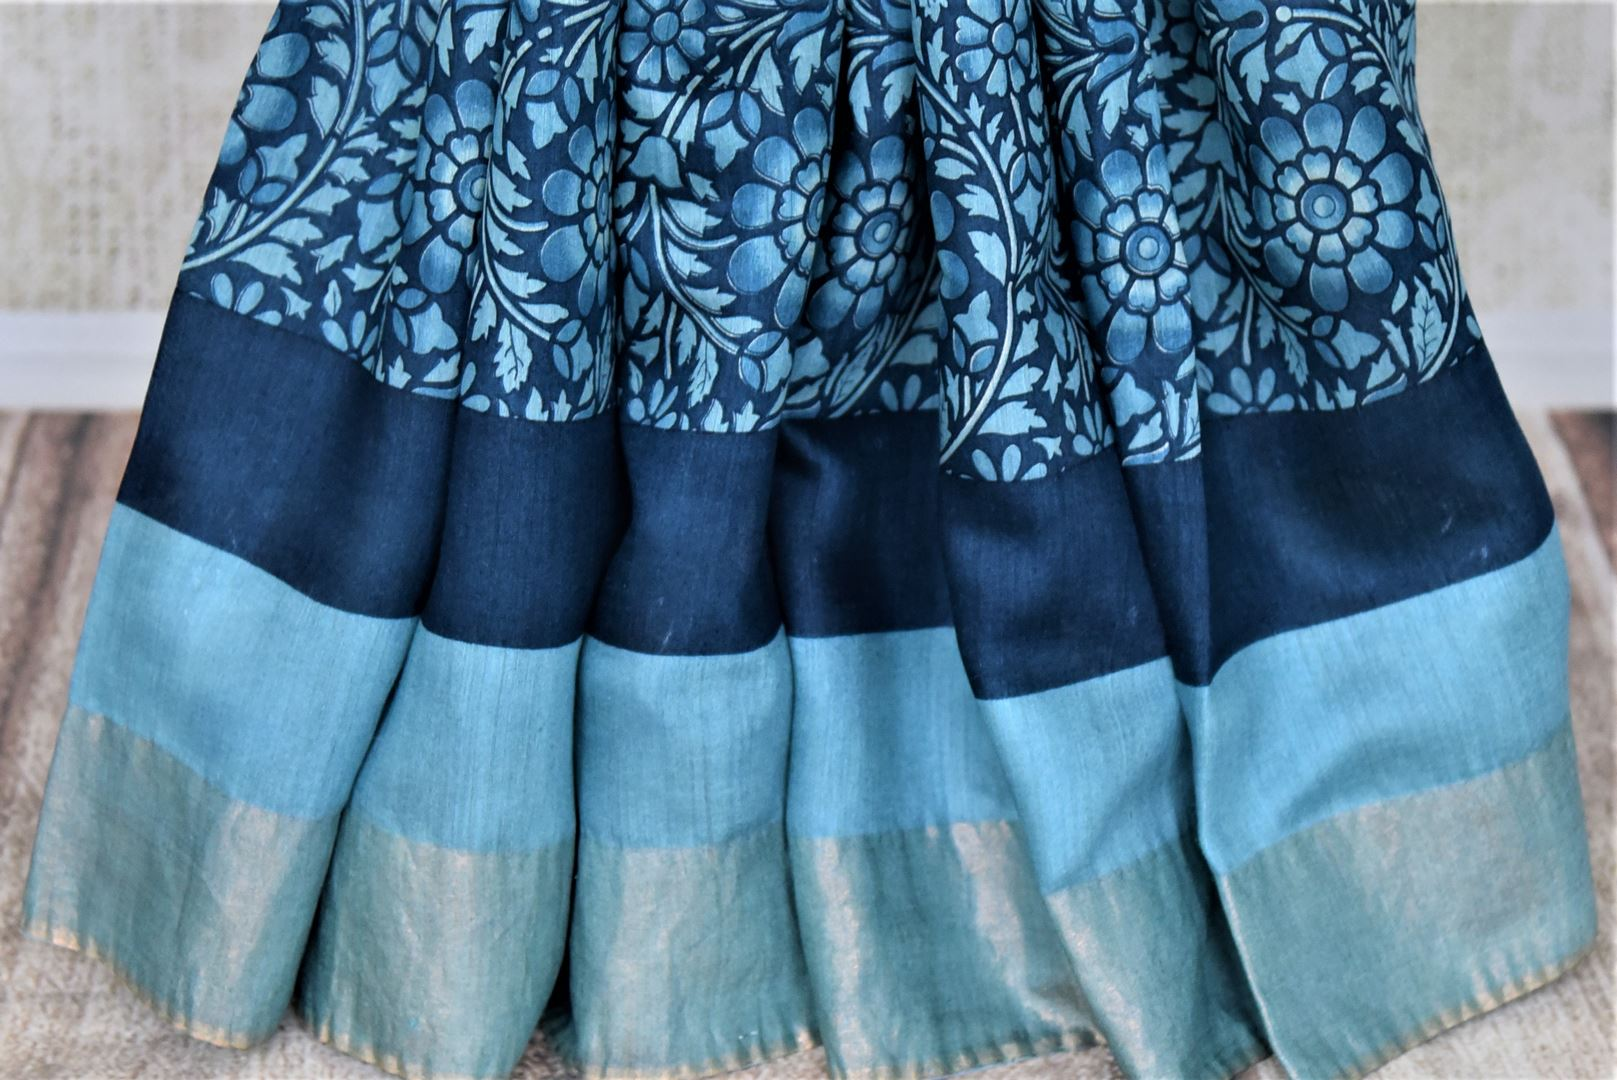 Shop lovely blue floral print tussar silk saree online in USA with light zari border. Make a beautiful appearance on special occasions with exquisite Indian designer saris, pure silk sarees from Pure Elegance Indian fashion store in USA.-pleats